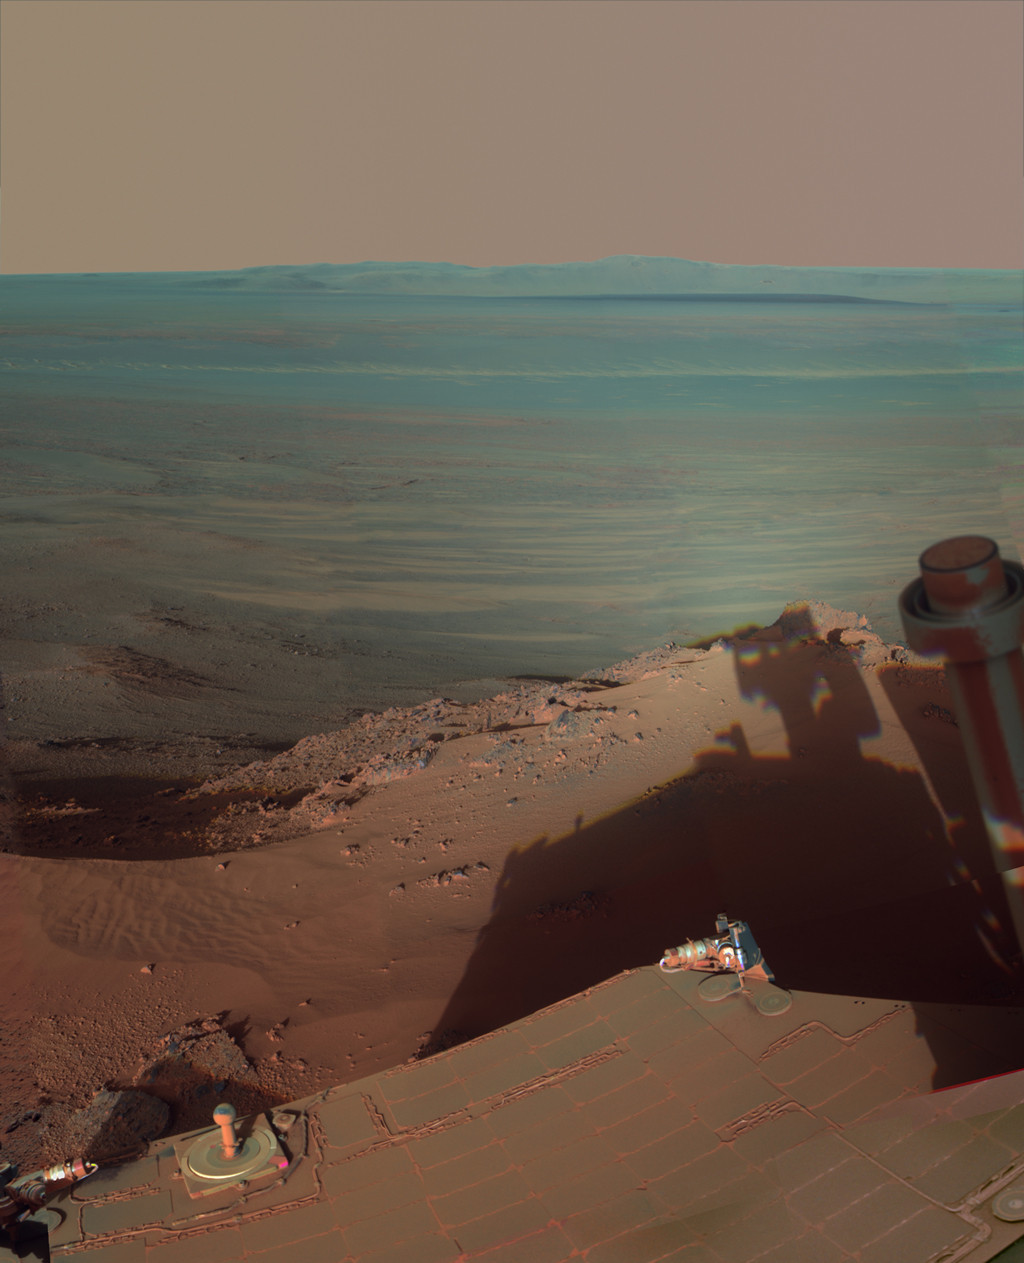 photo from the Mars Rover